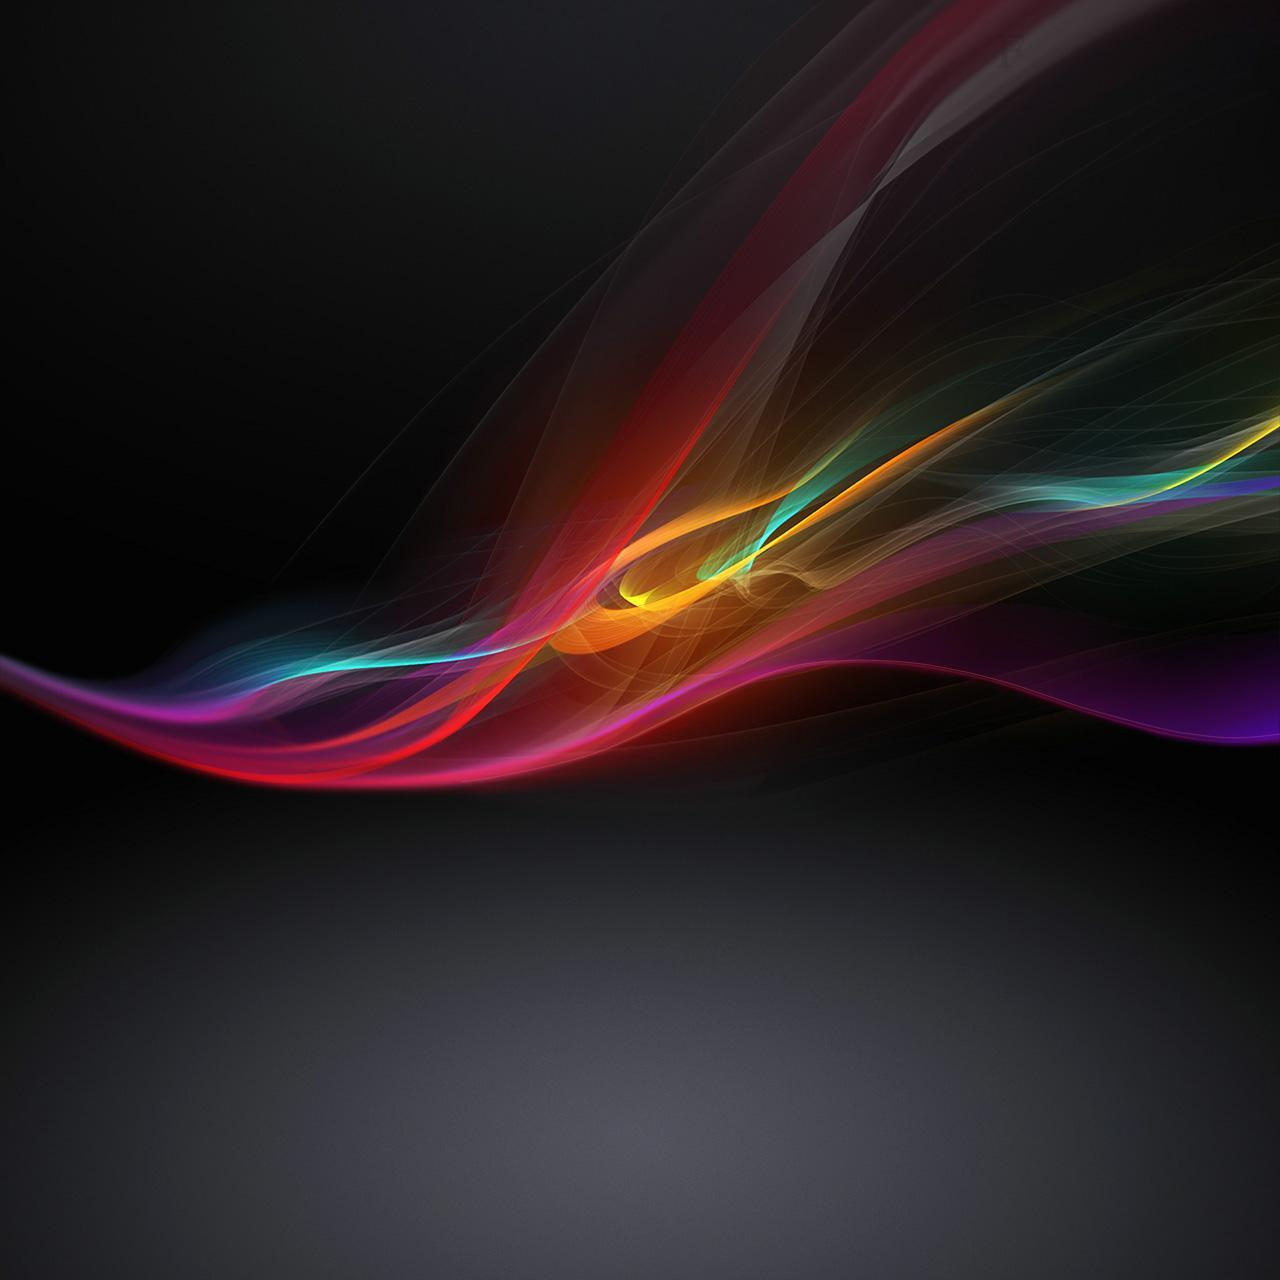 Wallpapers For Sony Xperia Z5z4z3z2z1 For Android Apk